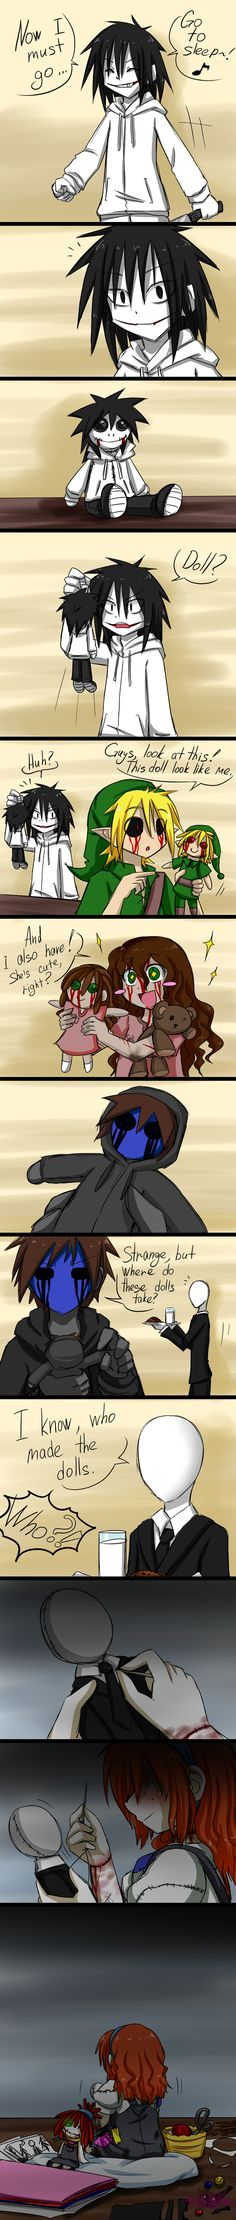 Dolls... by NaughtyKittyDV-1992 on deviantART